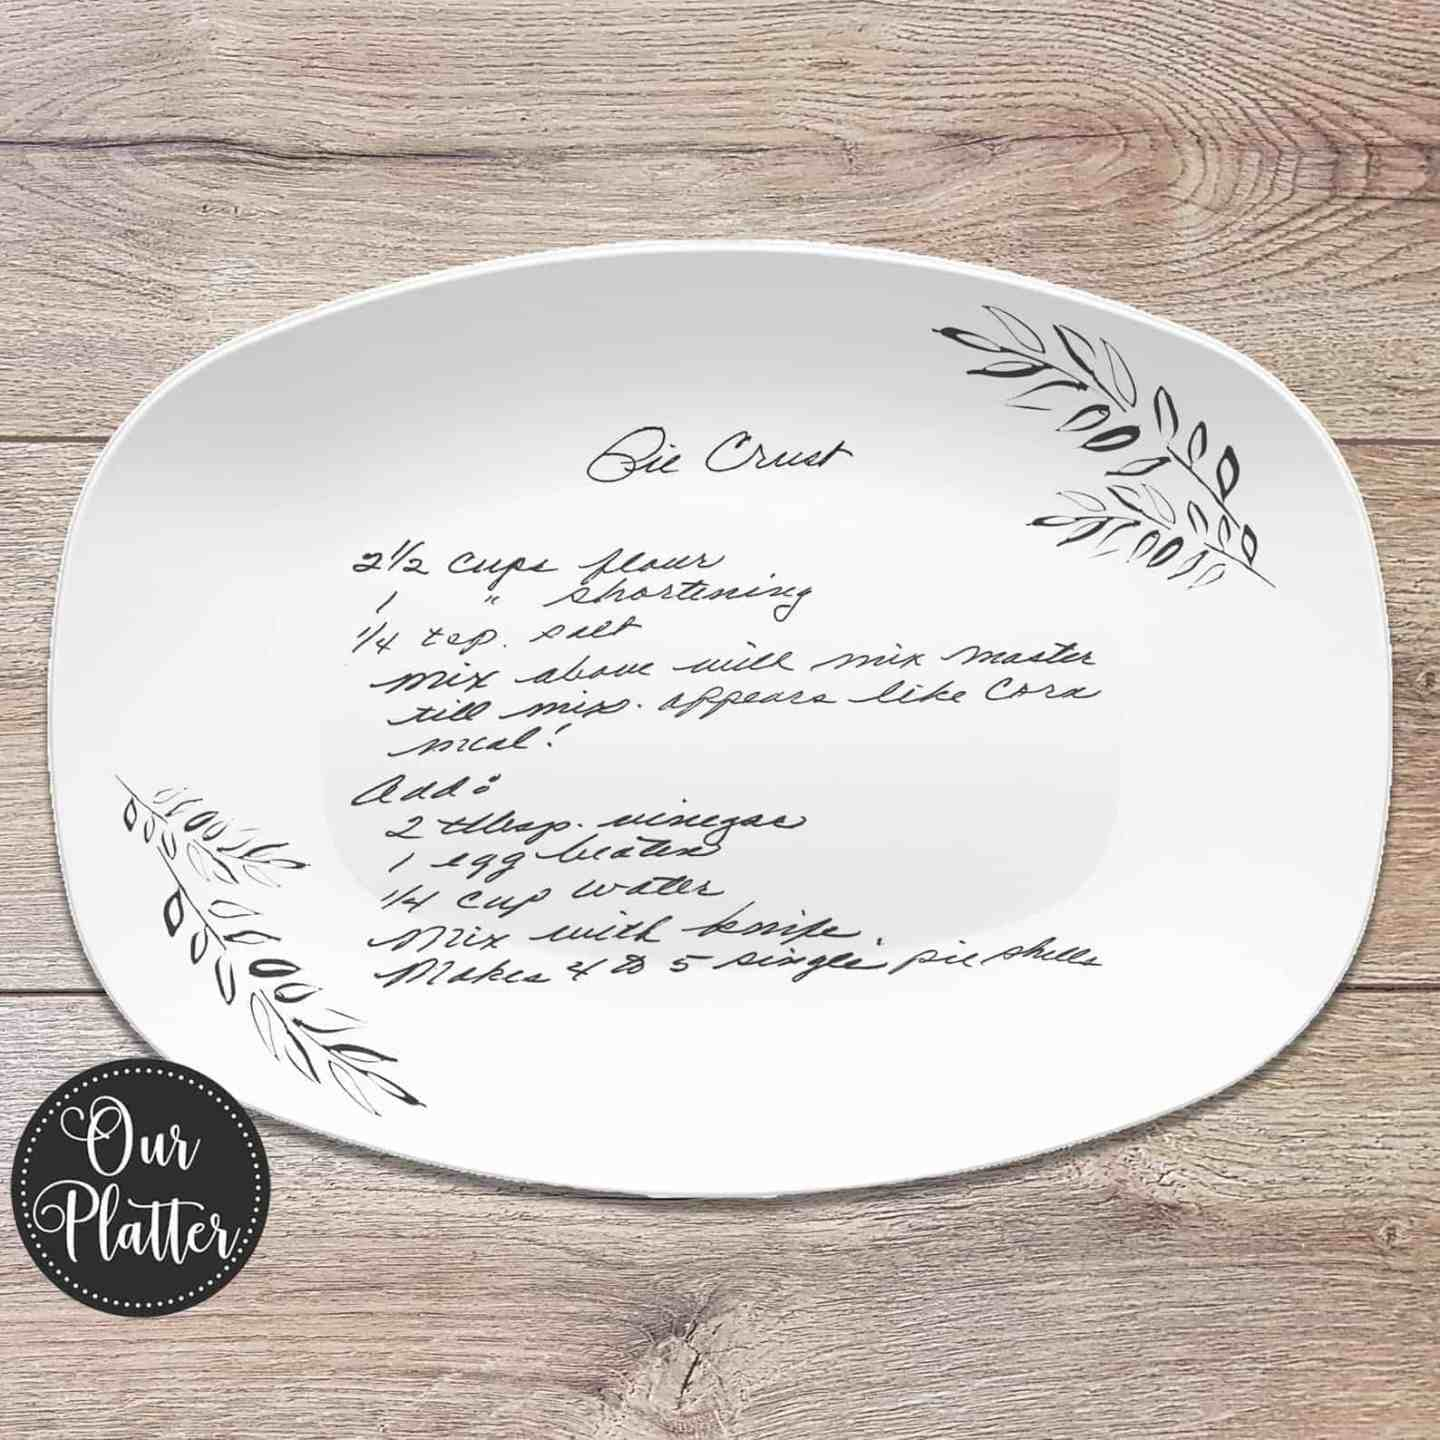 handwritten-recipe-platter-recipe-plate-mothers-day-gift-ideas